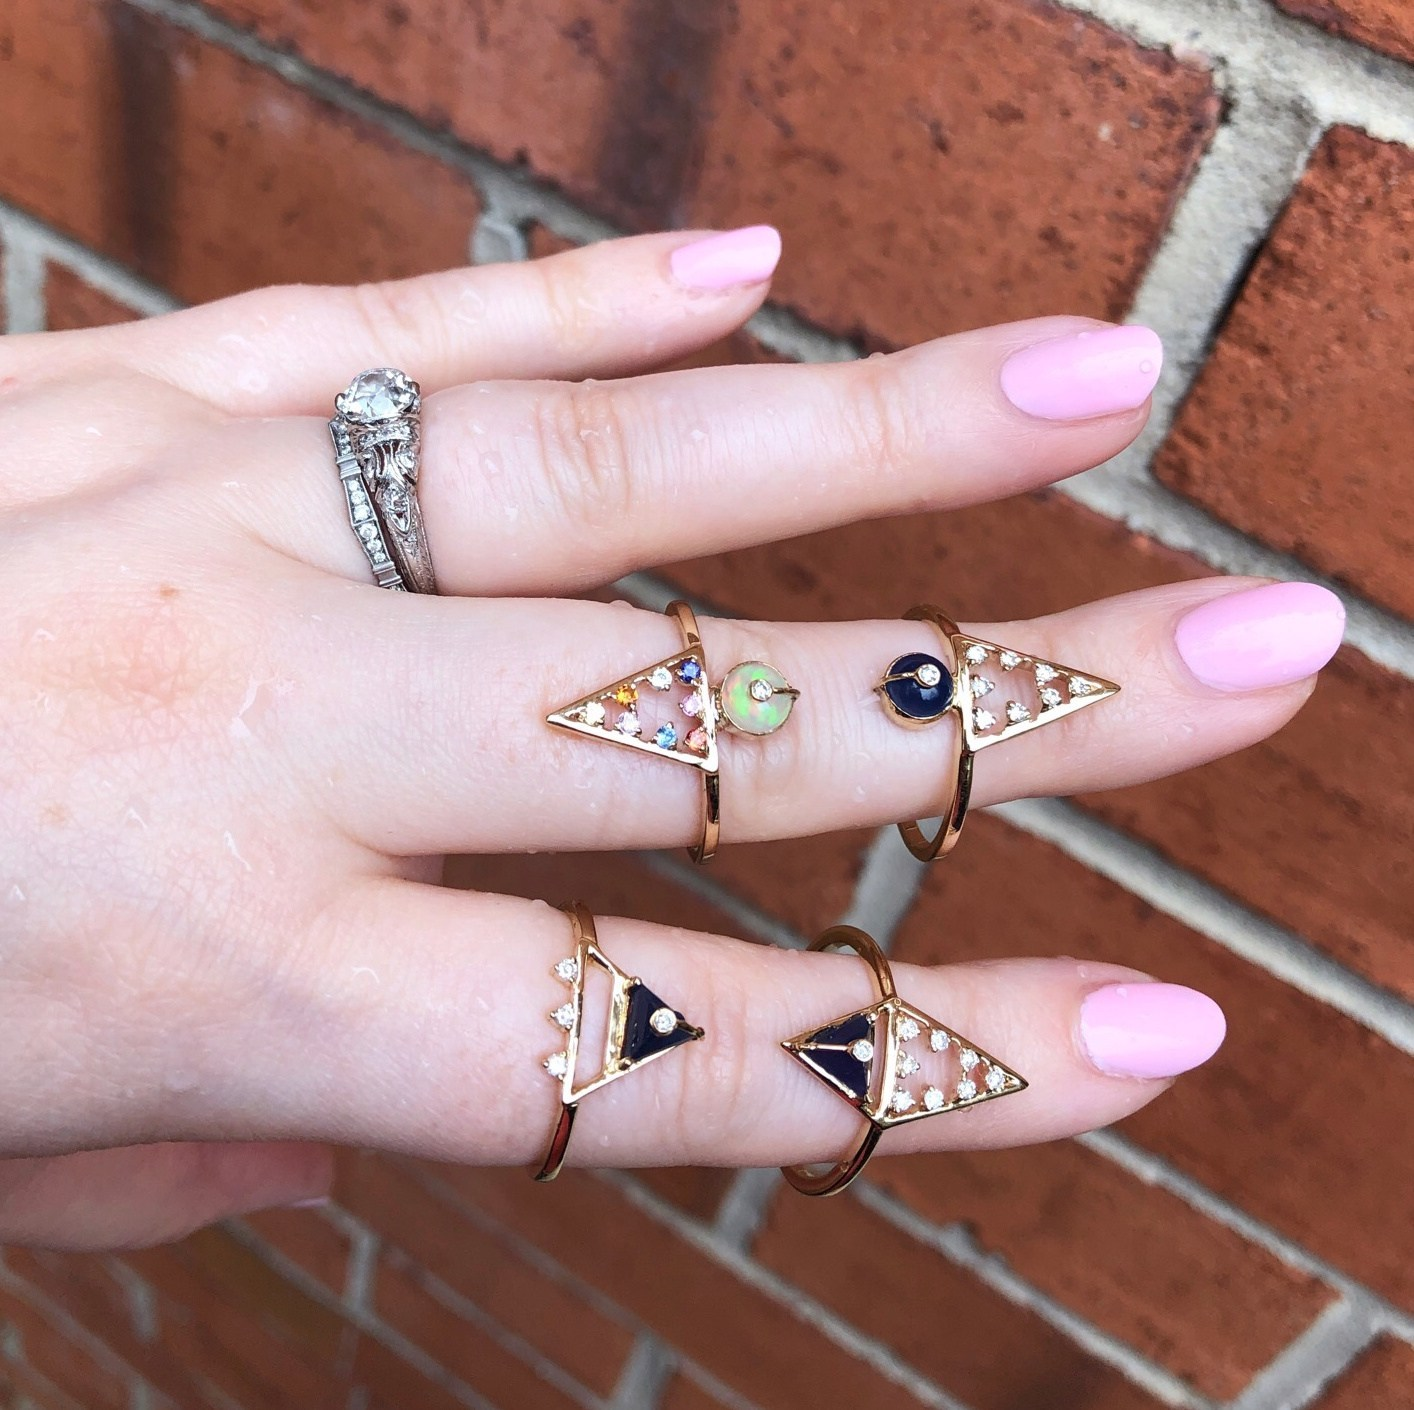 Beautiful rings from Loriann Jewelry's new Moderne collection. Diamonds, sapphires, lapis, and opals in gold.